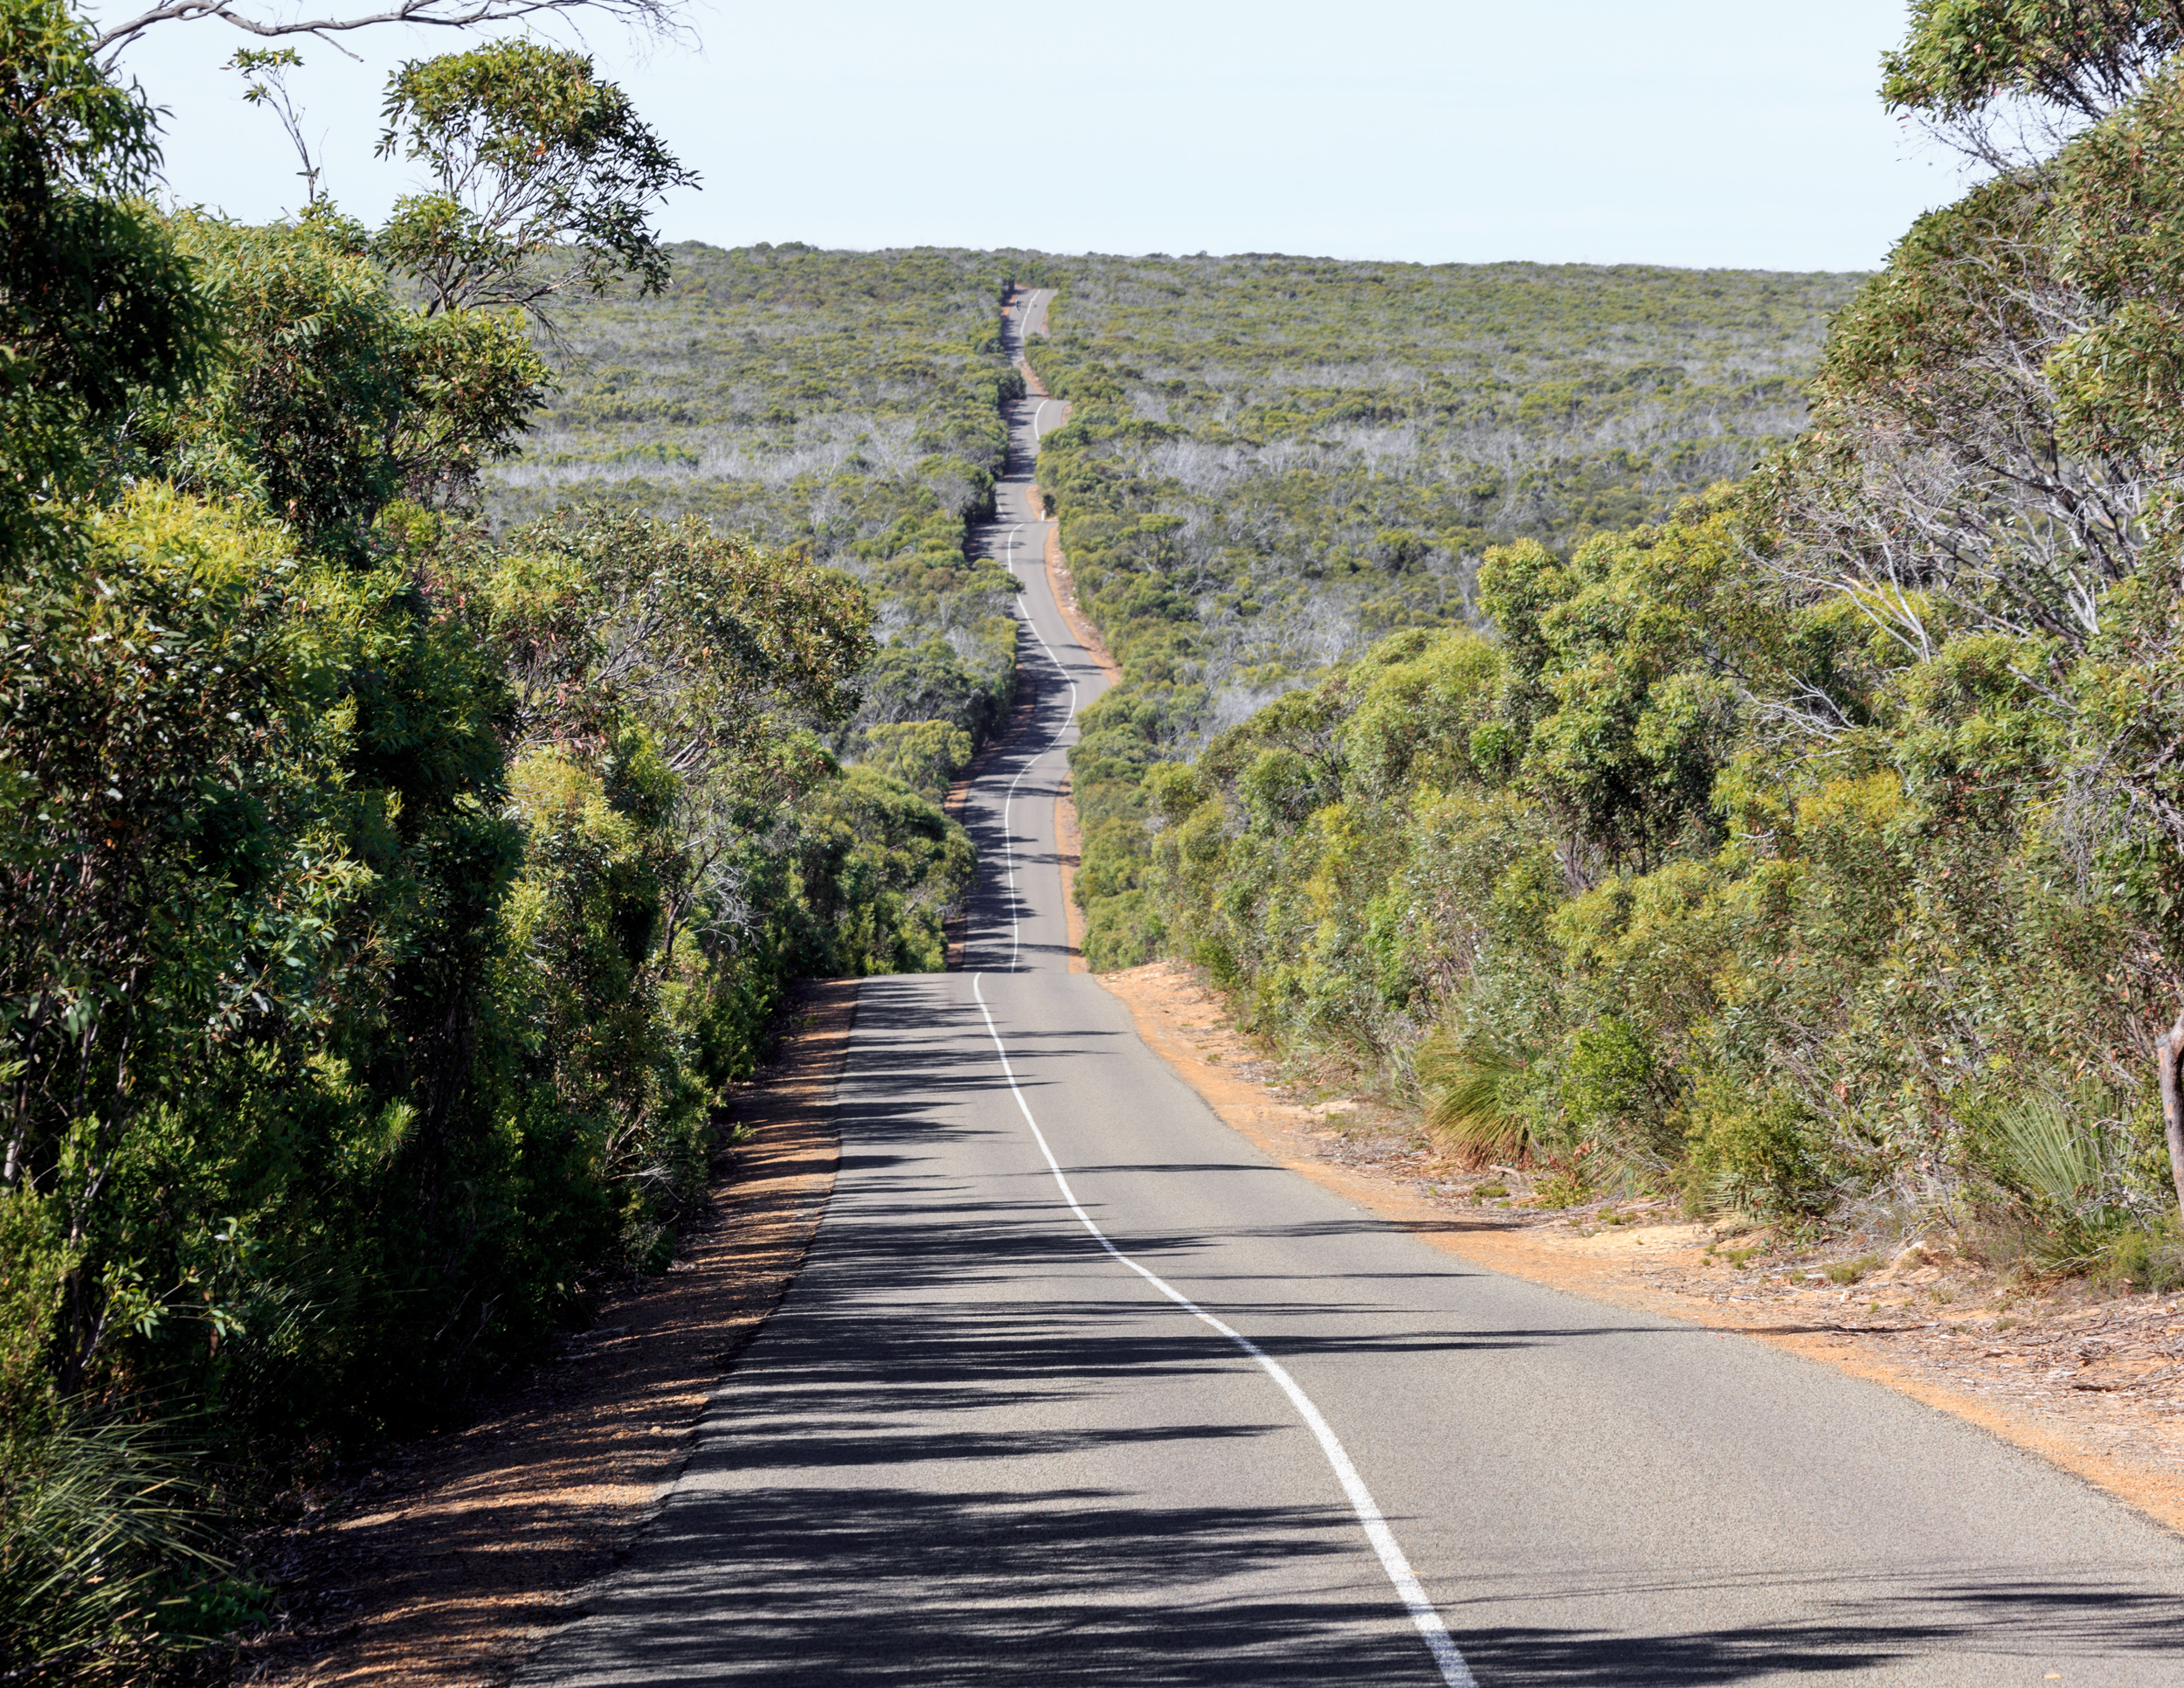 One of the roads in Flinders Chase National Park, Kangaroo Island